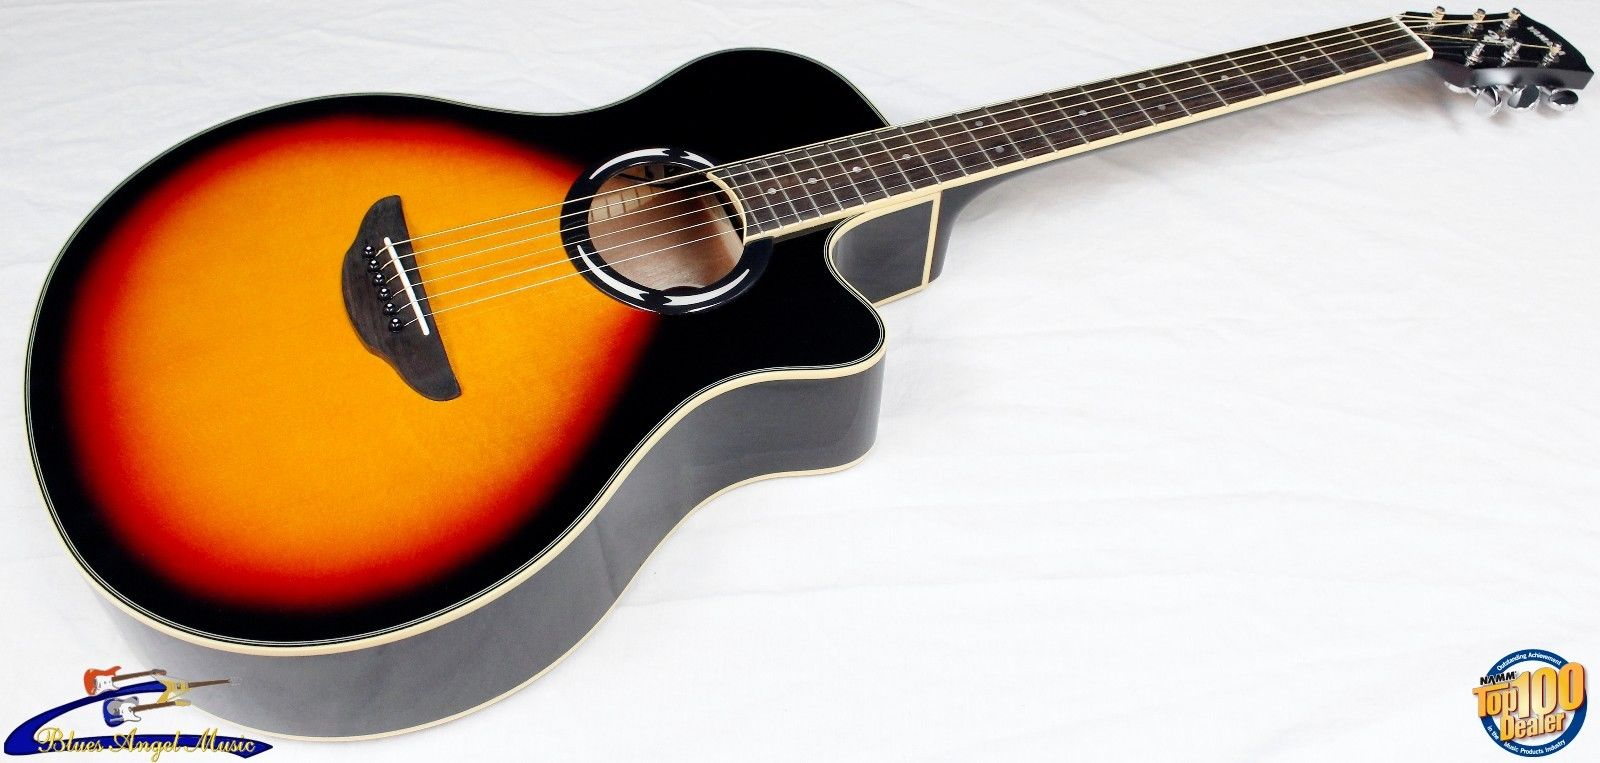 yamaha apx500iii thinline cutaway acoustic electric guitar vintage sb 27471 guitar of china. Black Bedroom Furniture Sets. Home Design Ideas